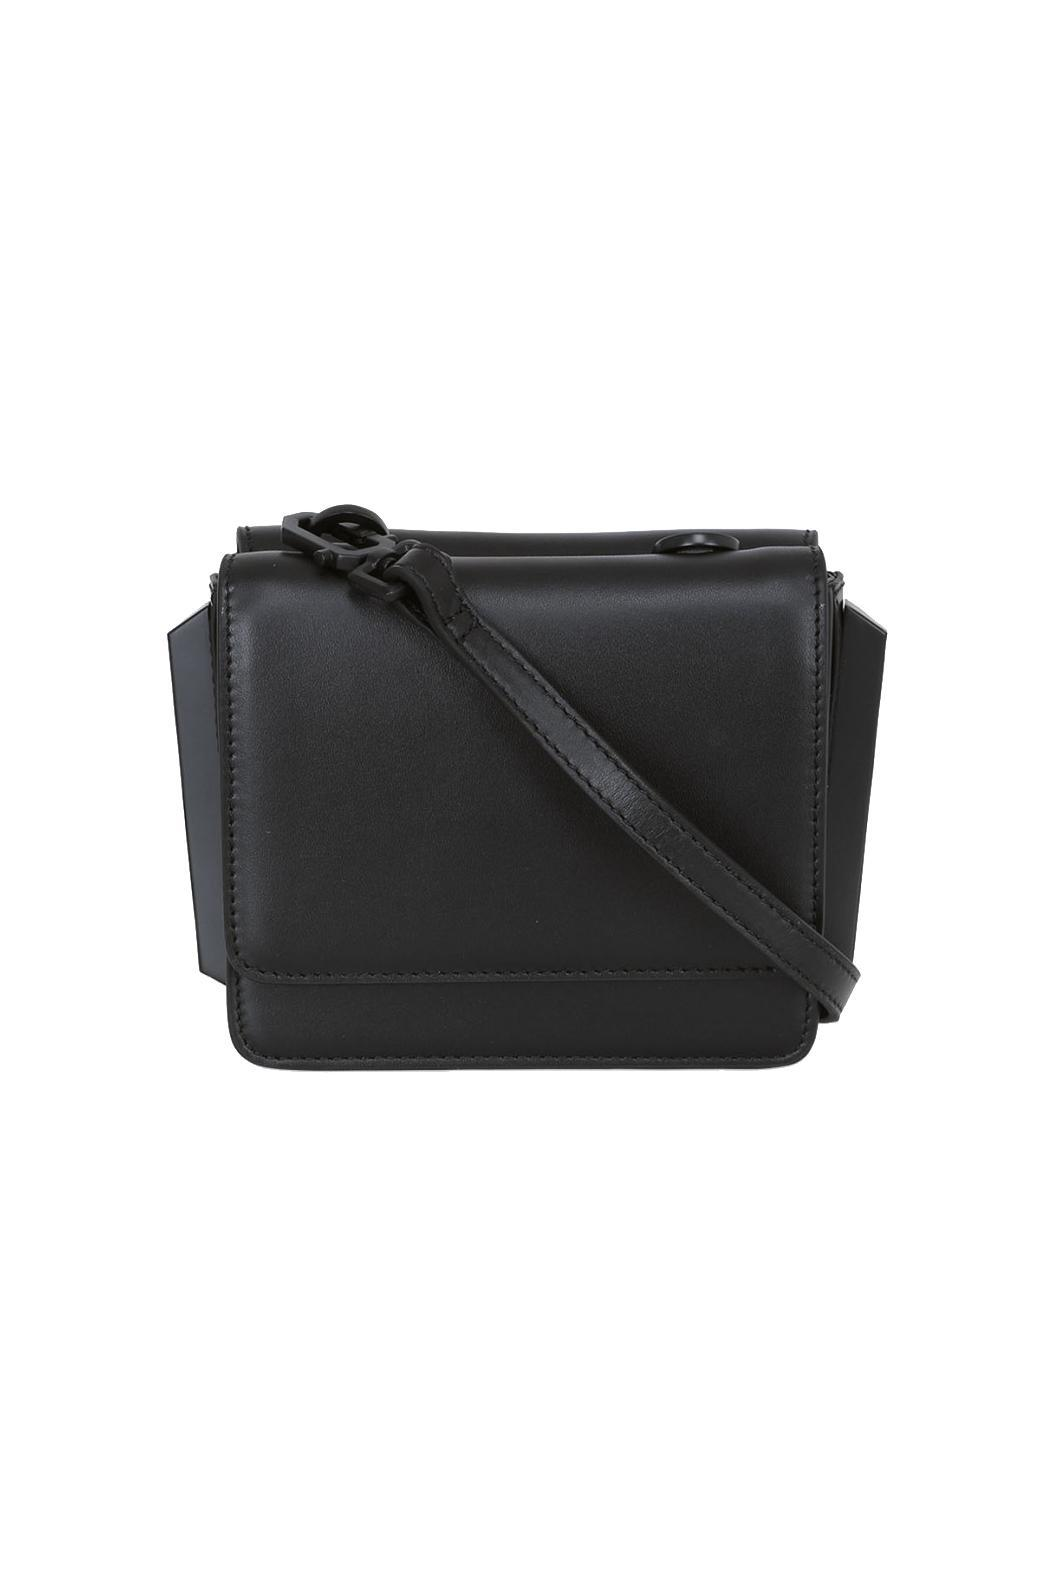 Kendall + Kylie Baxter Crossbody Bag - Front Full Image